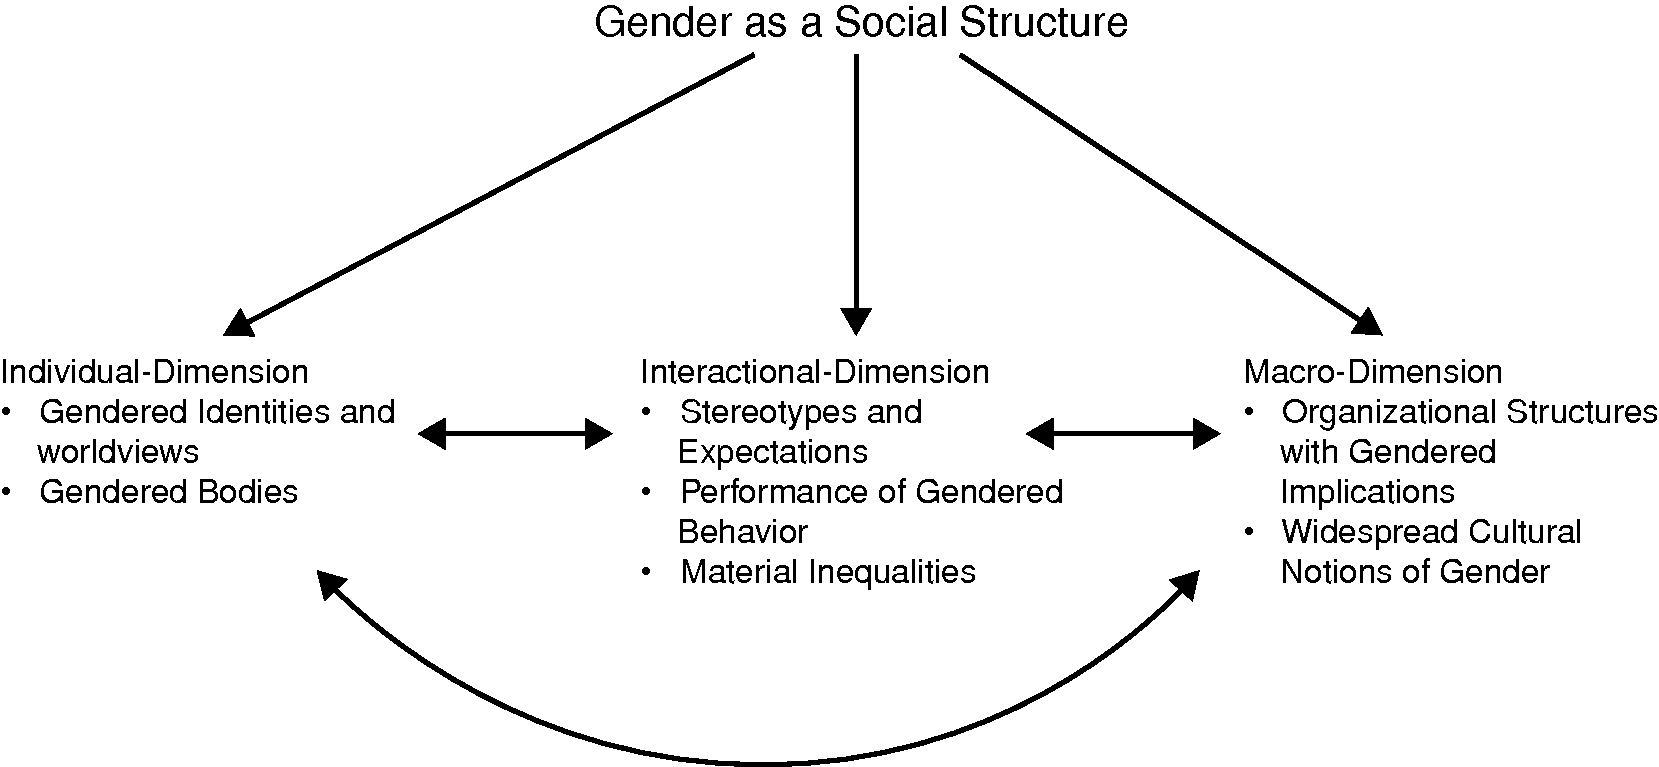 Problems of Discrimination and Inequality (Part III) - The